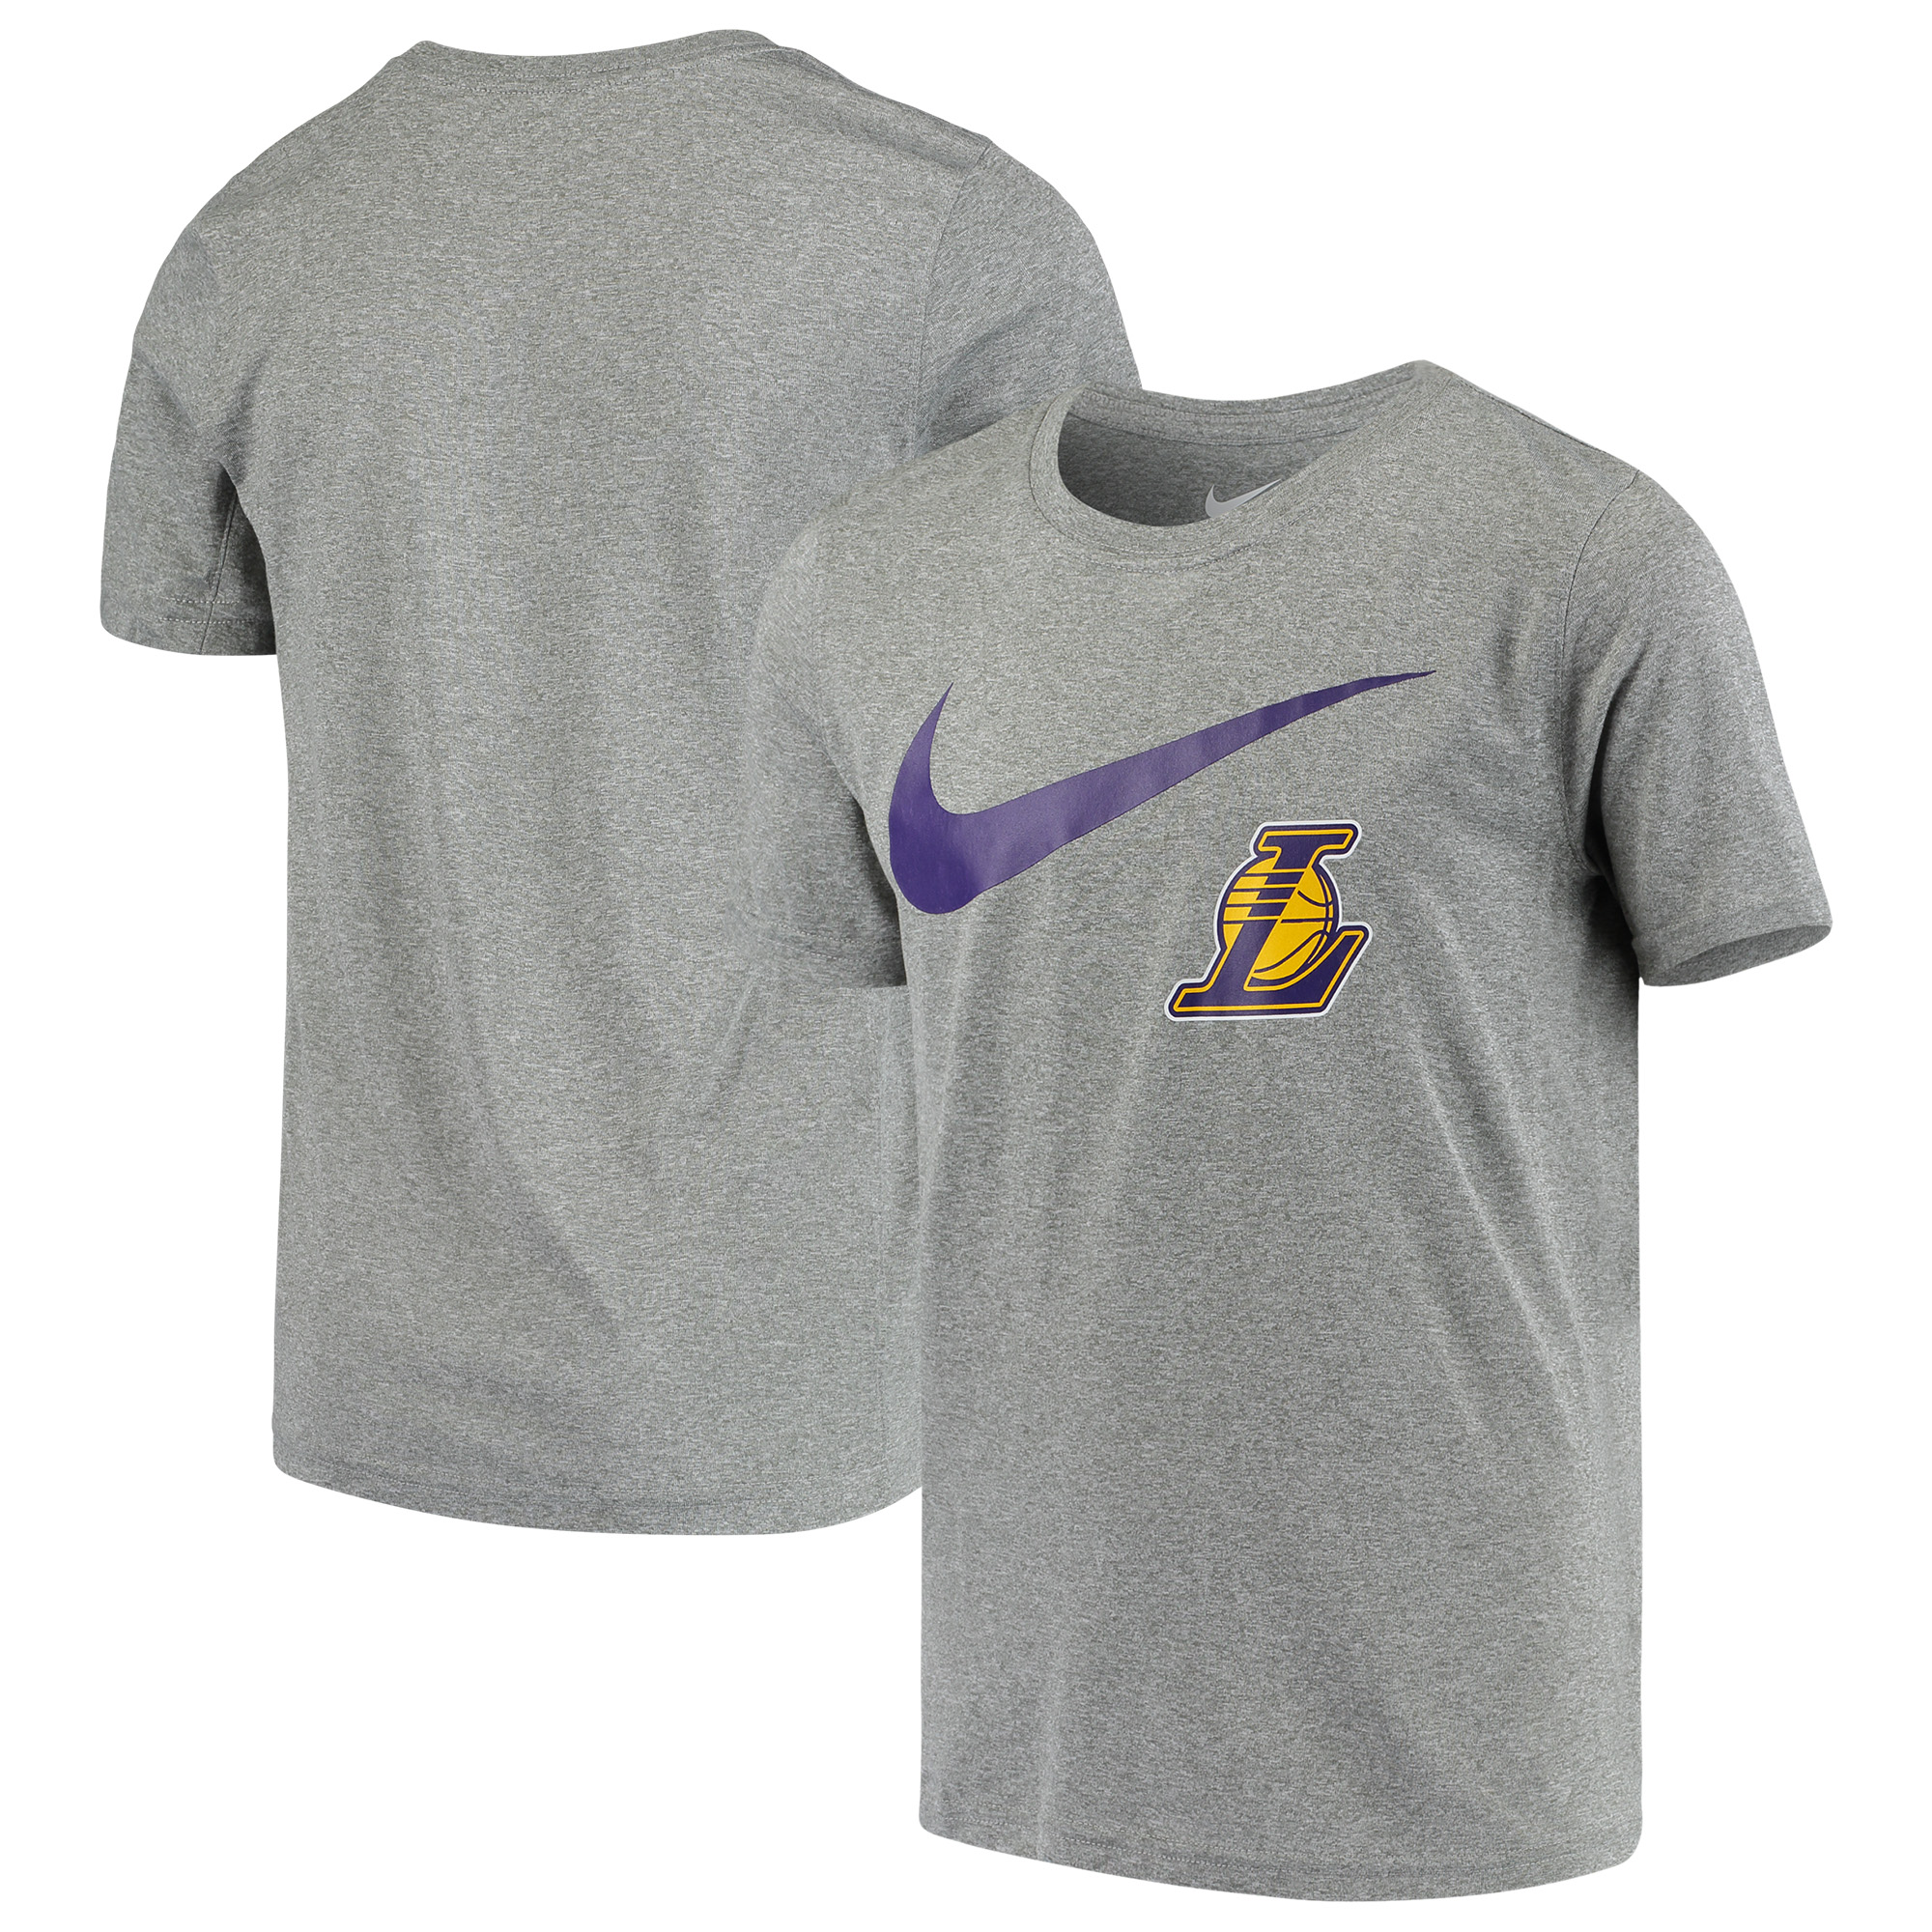 Los Angeles Lakers Nike Swoosh Logo Legend T-Shirt - Heathered Gray